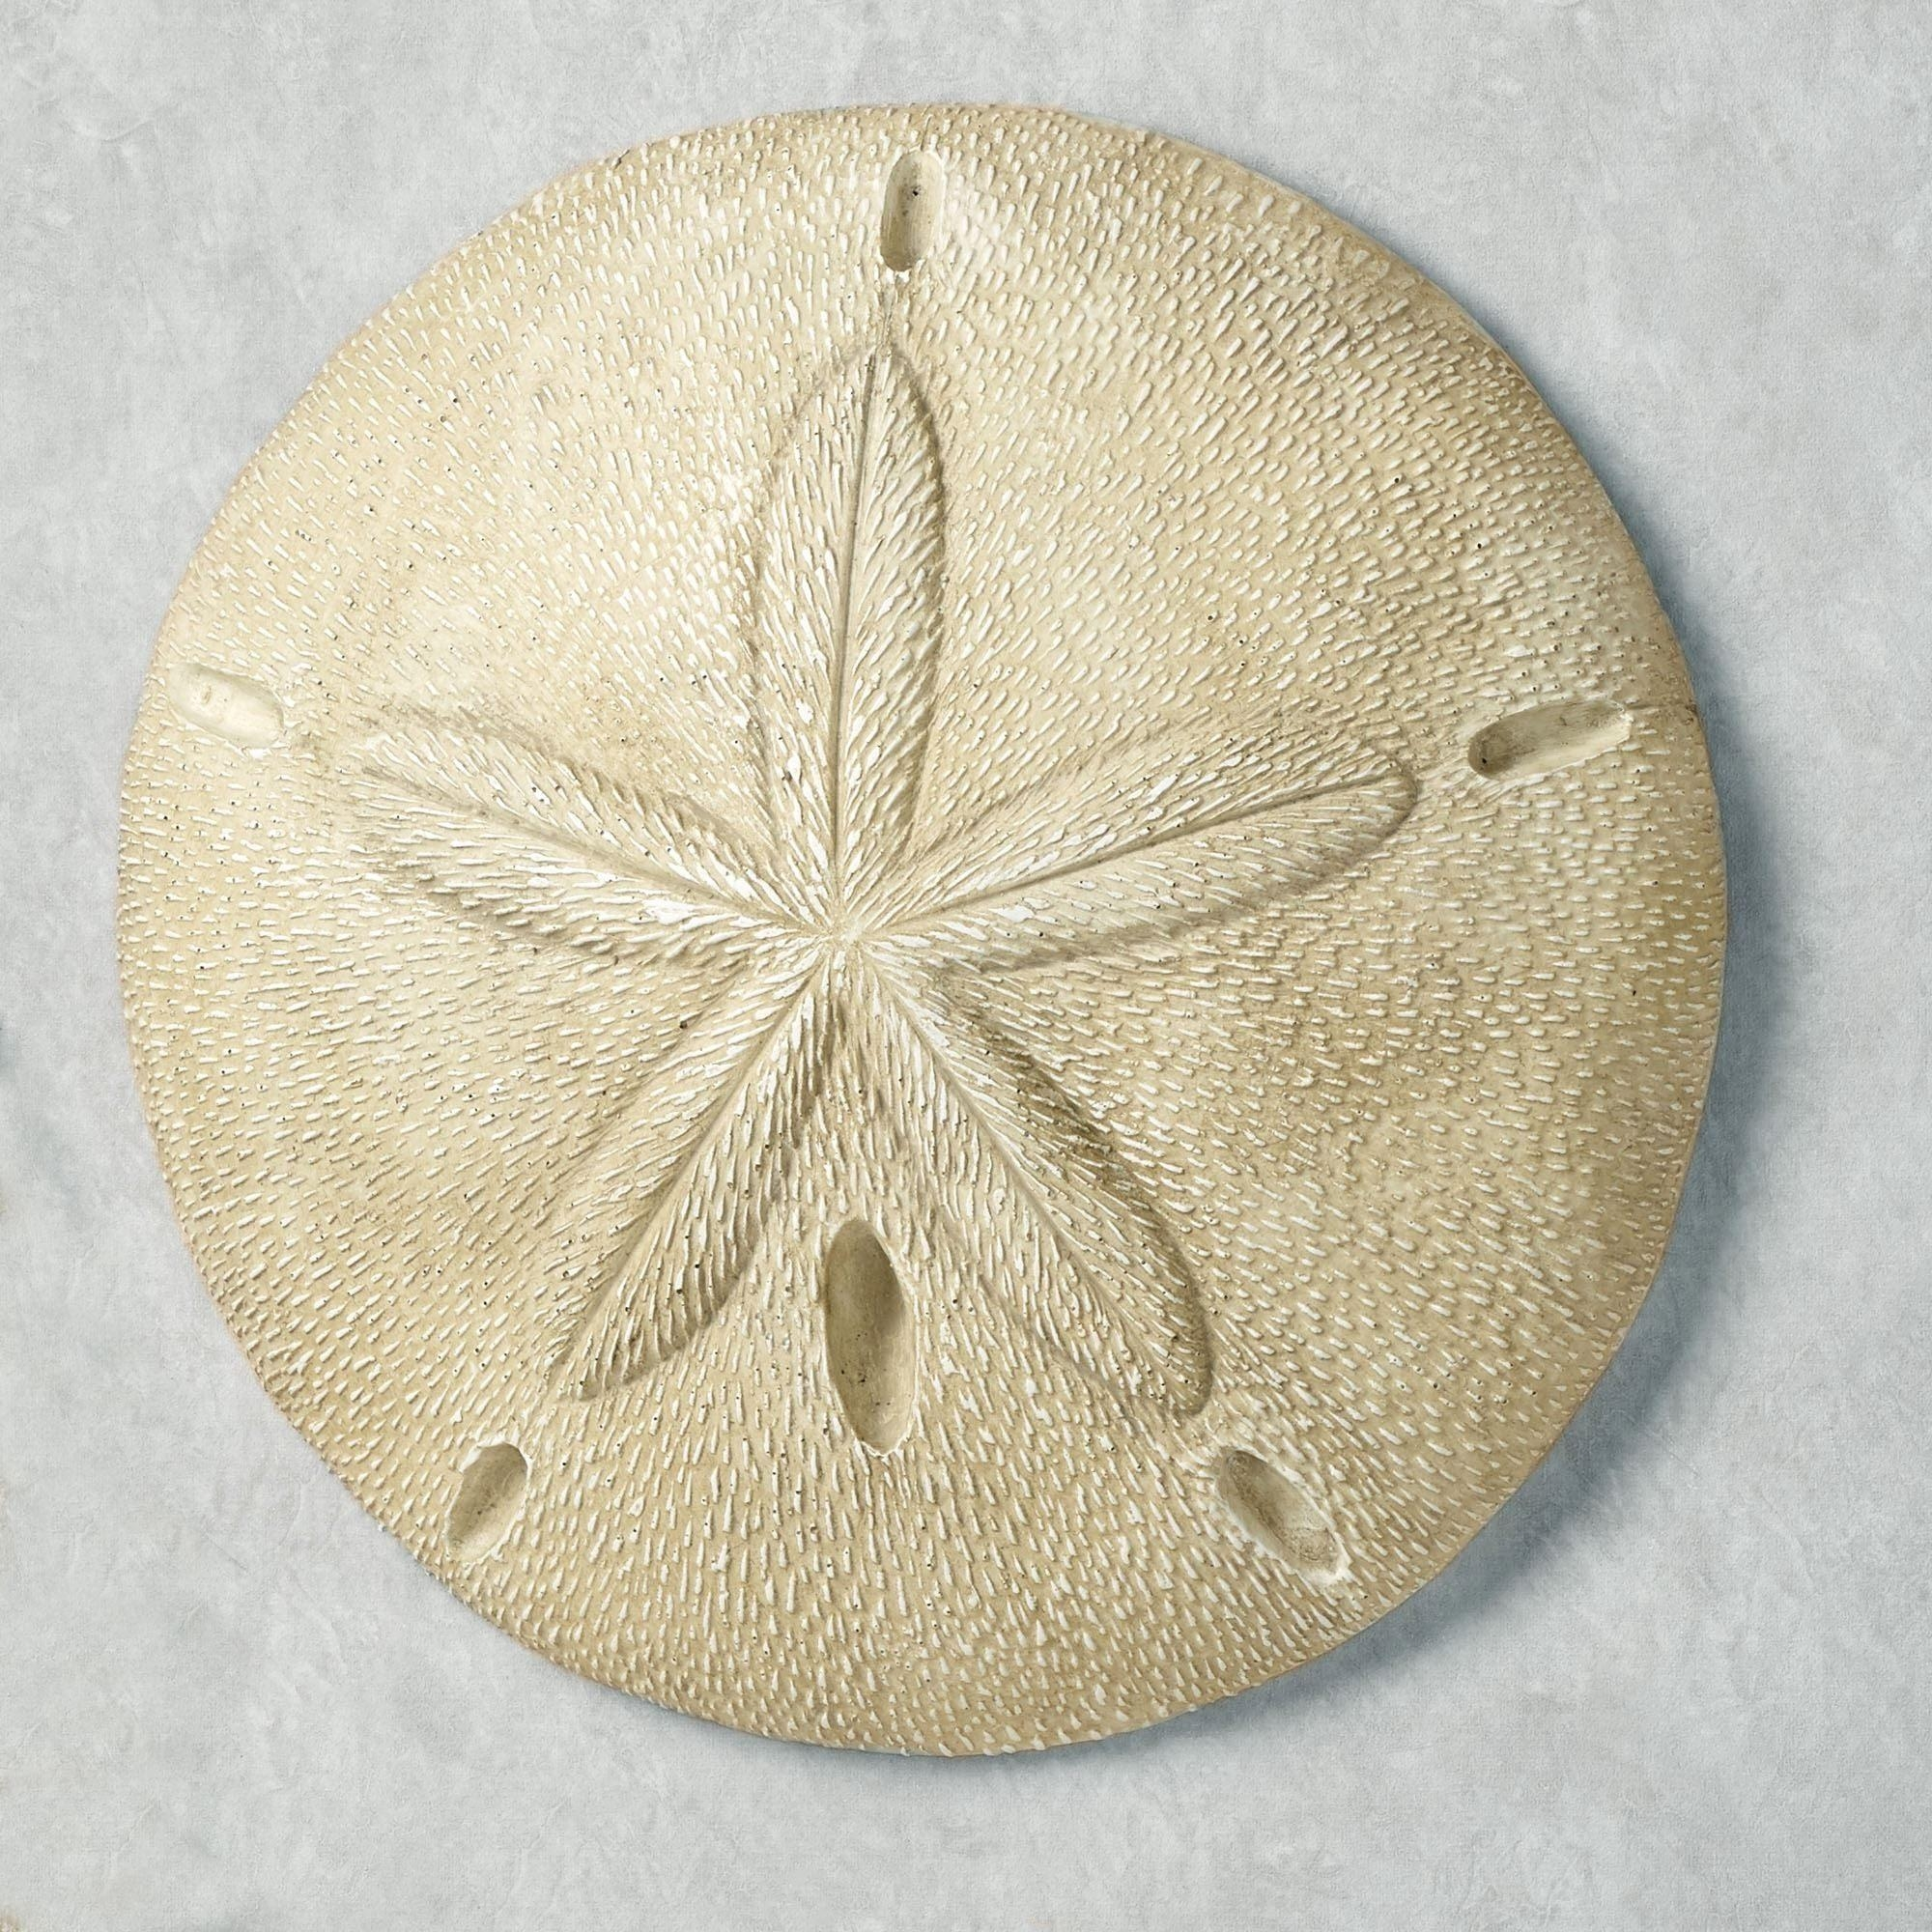 Mesmerizing Design Ideas Stencil Of Sand Dollar Sand Dollar Wall With Regard To Sand Dollar Wall Art (Image 7 of 20)